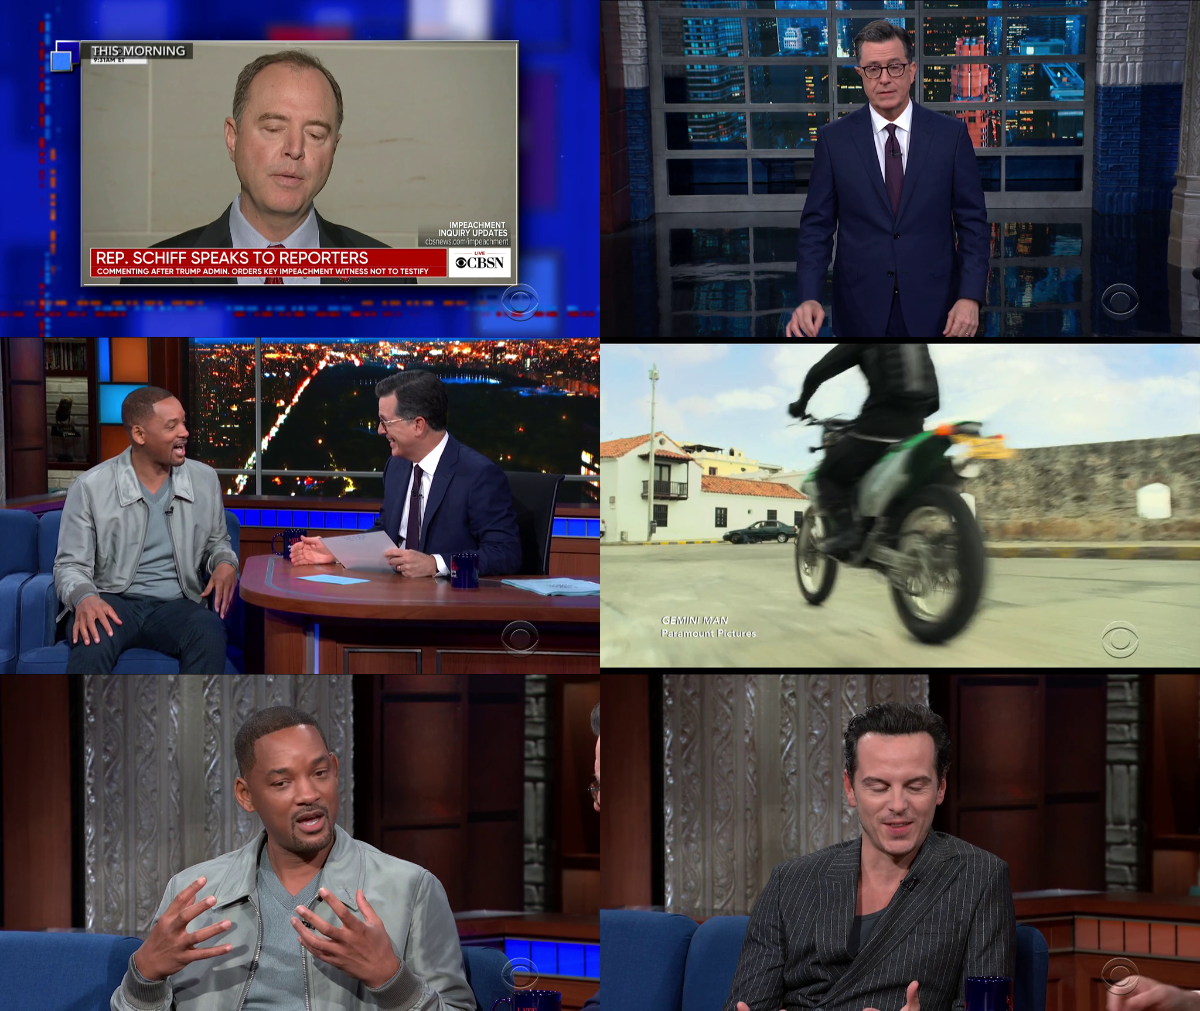 https://img35.pixhost.to/images/319/123933357_stephen-colbert-2019-10-08-will-smith-web-x264-trump.png